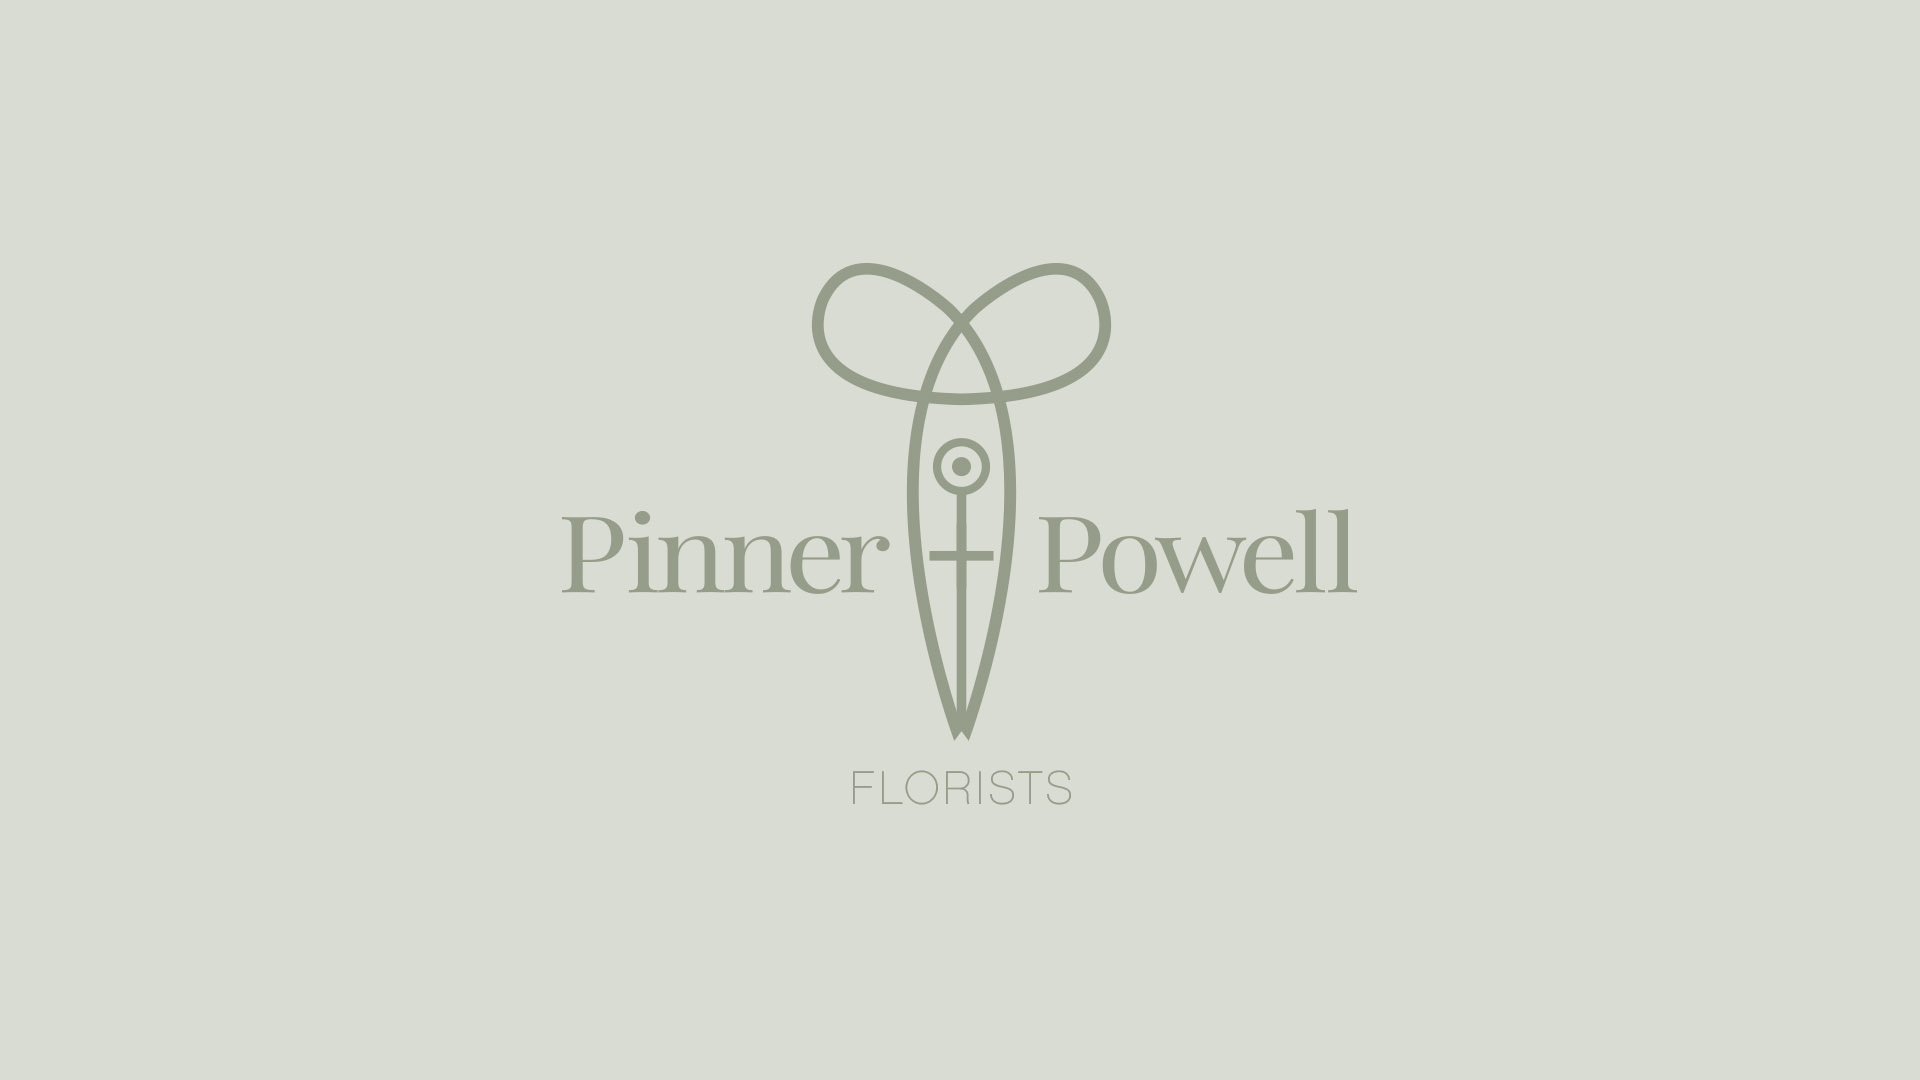 Pinner + Powell Florist logo design